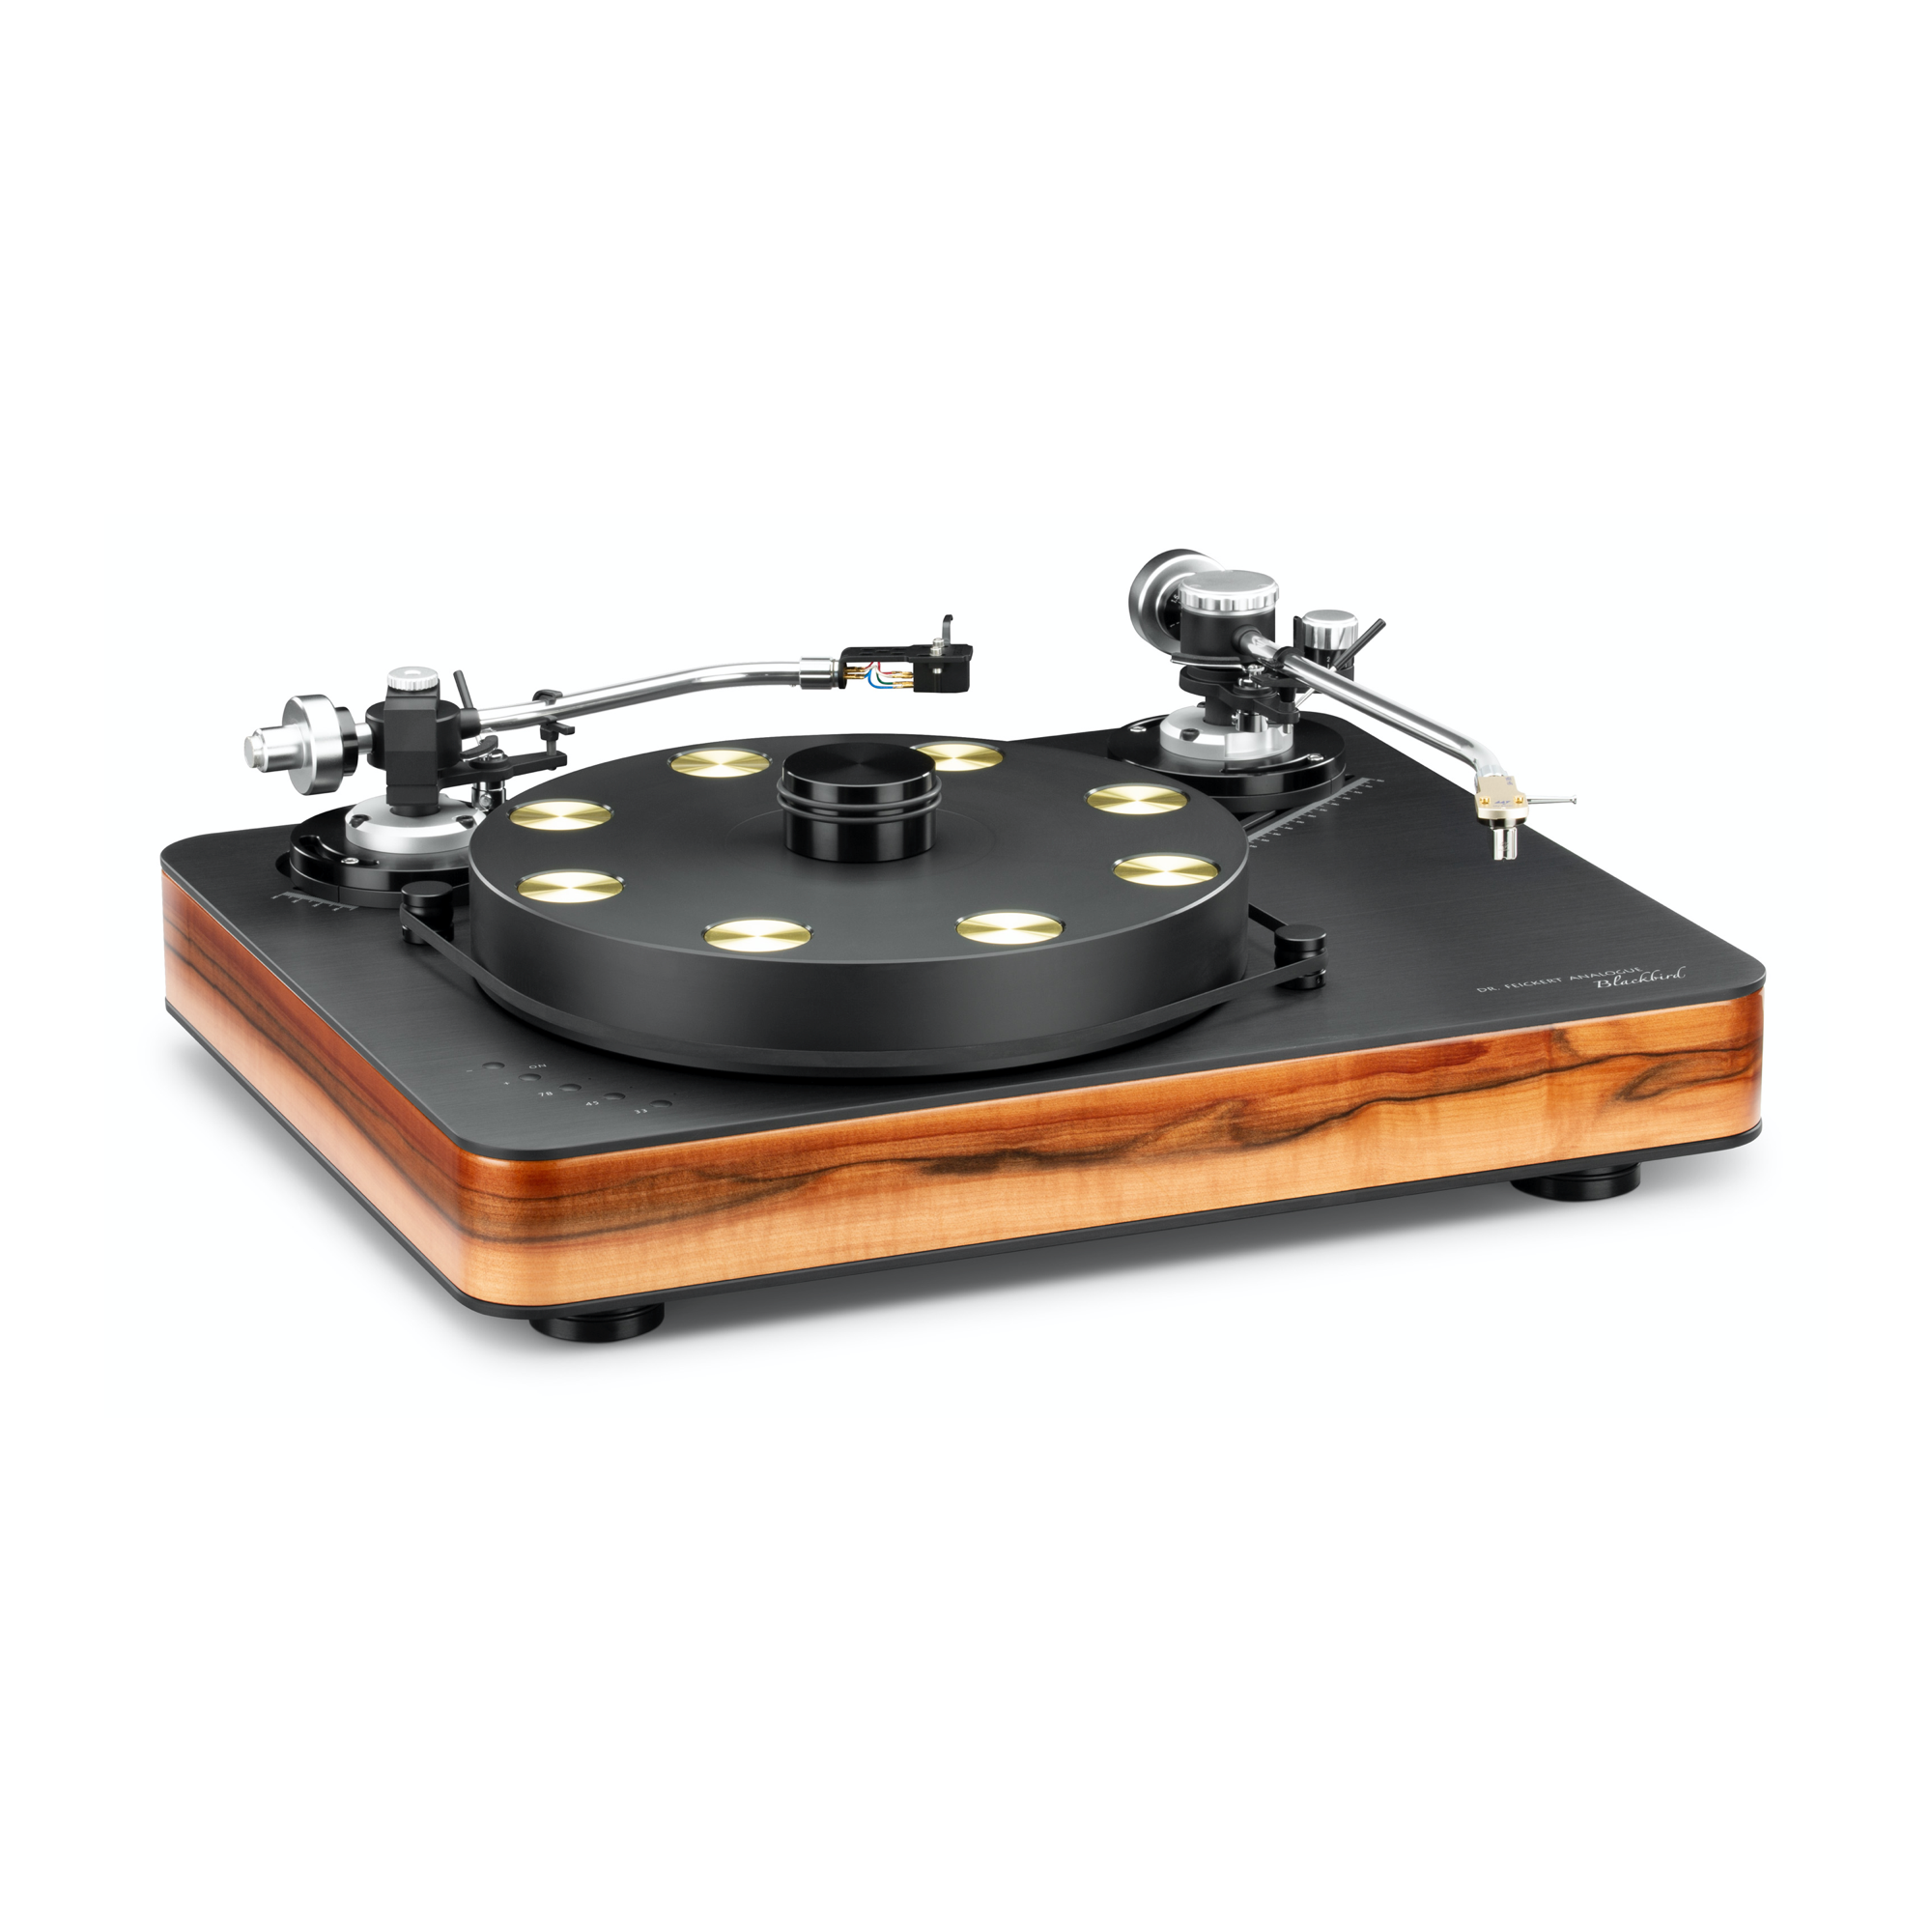 "Dr. Feickert Blackbird Deluxe TS-MXX Noise Cancelling Dual 180 Motors w/ 2 Arm Mounts 20.87"" x 16.54"" x 5.91"" Turntable"